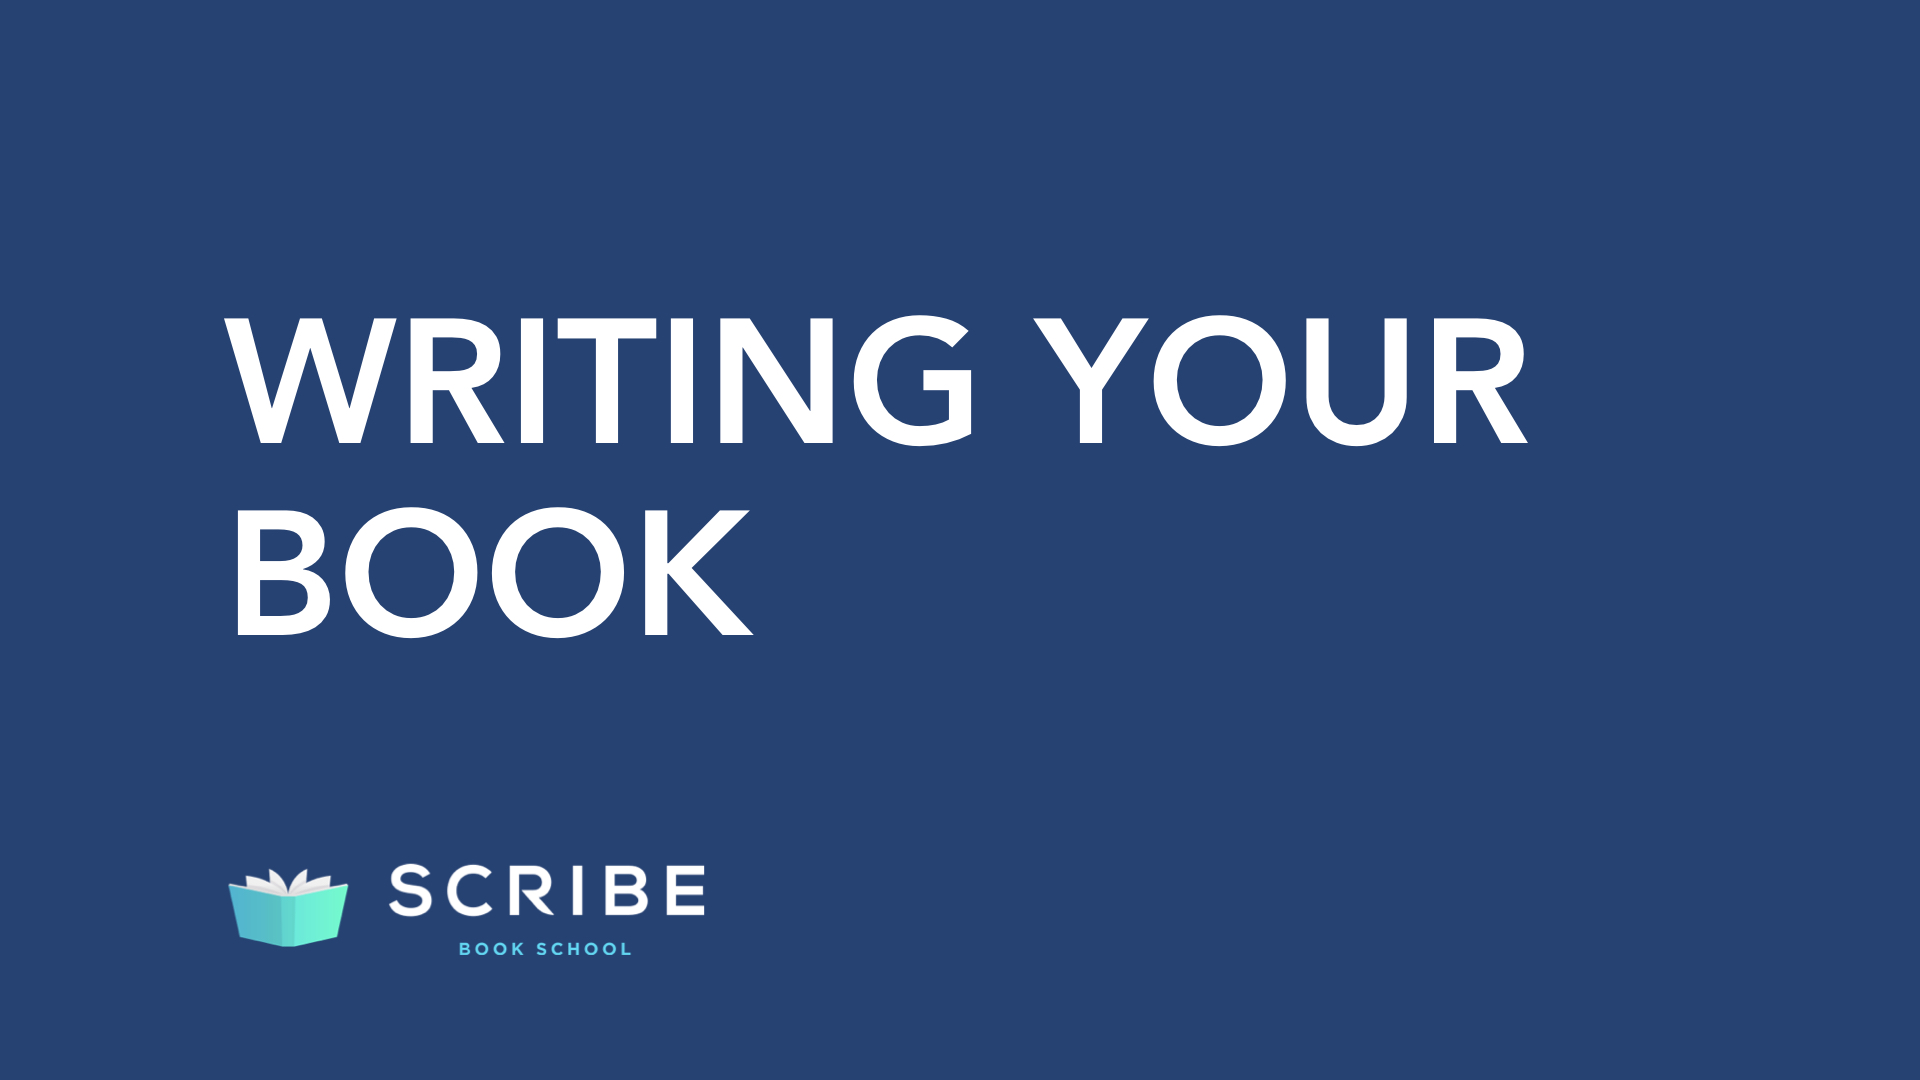 scribe book school writing your book